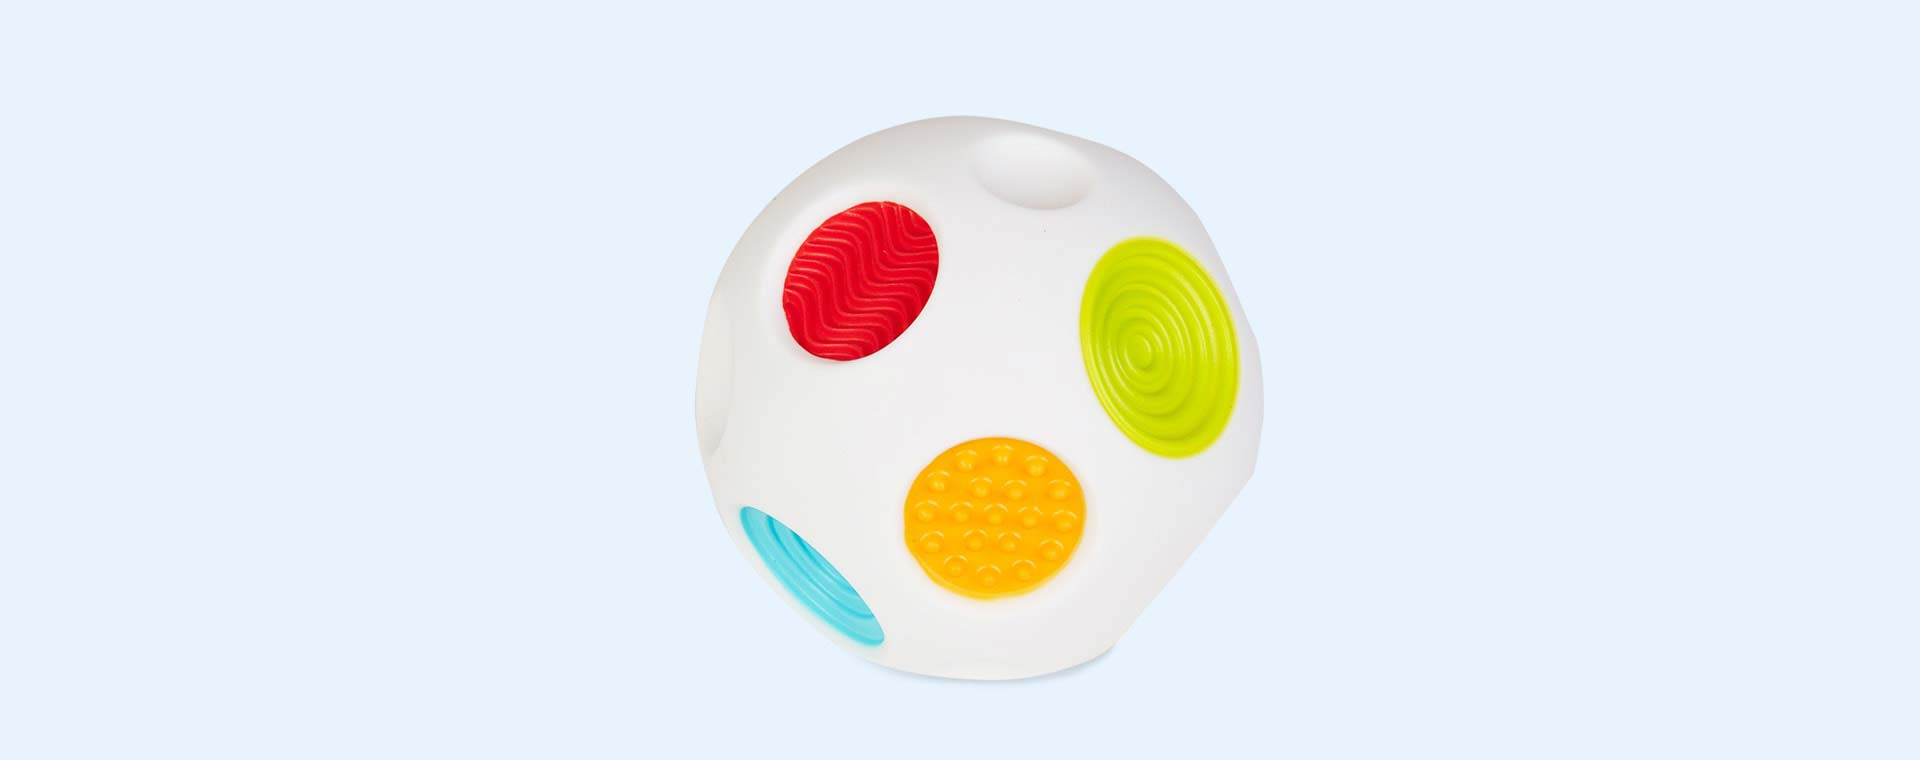 White B Kids Sensory Rainbow Sound & Light Ball